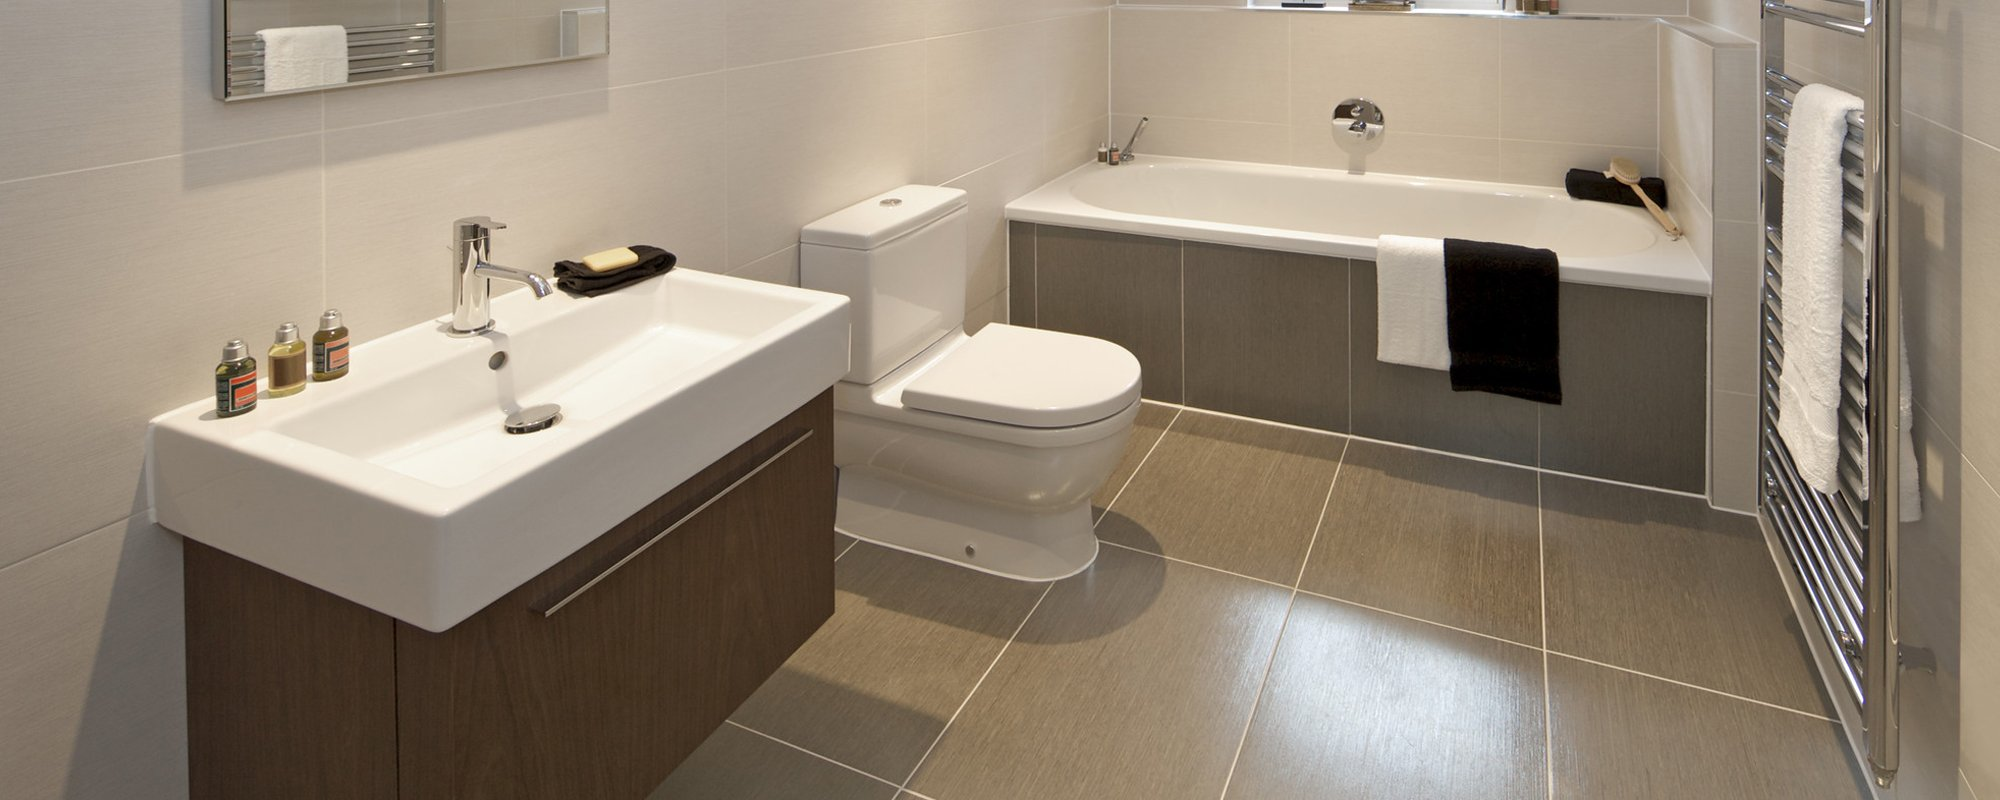 aspects of bathroom and kitchen fitting